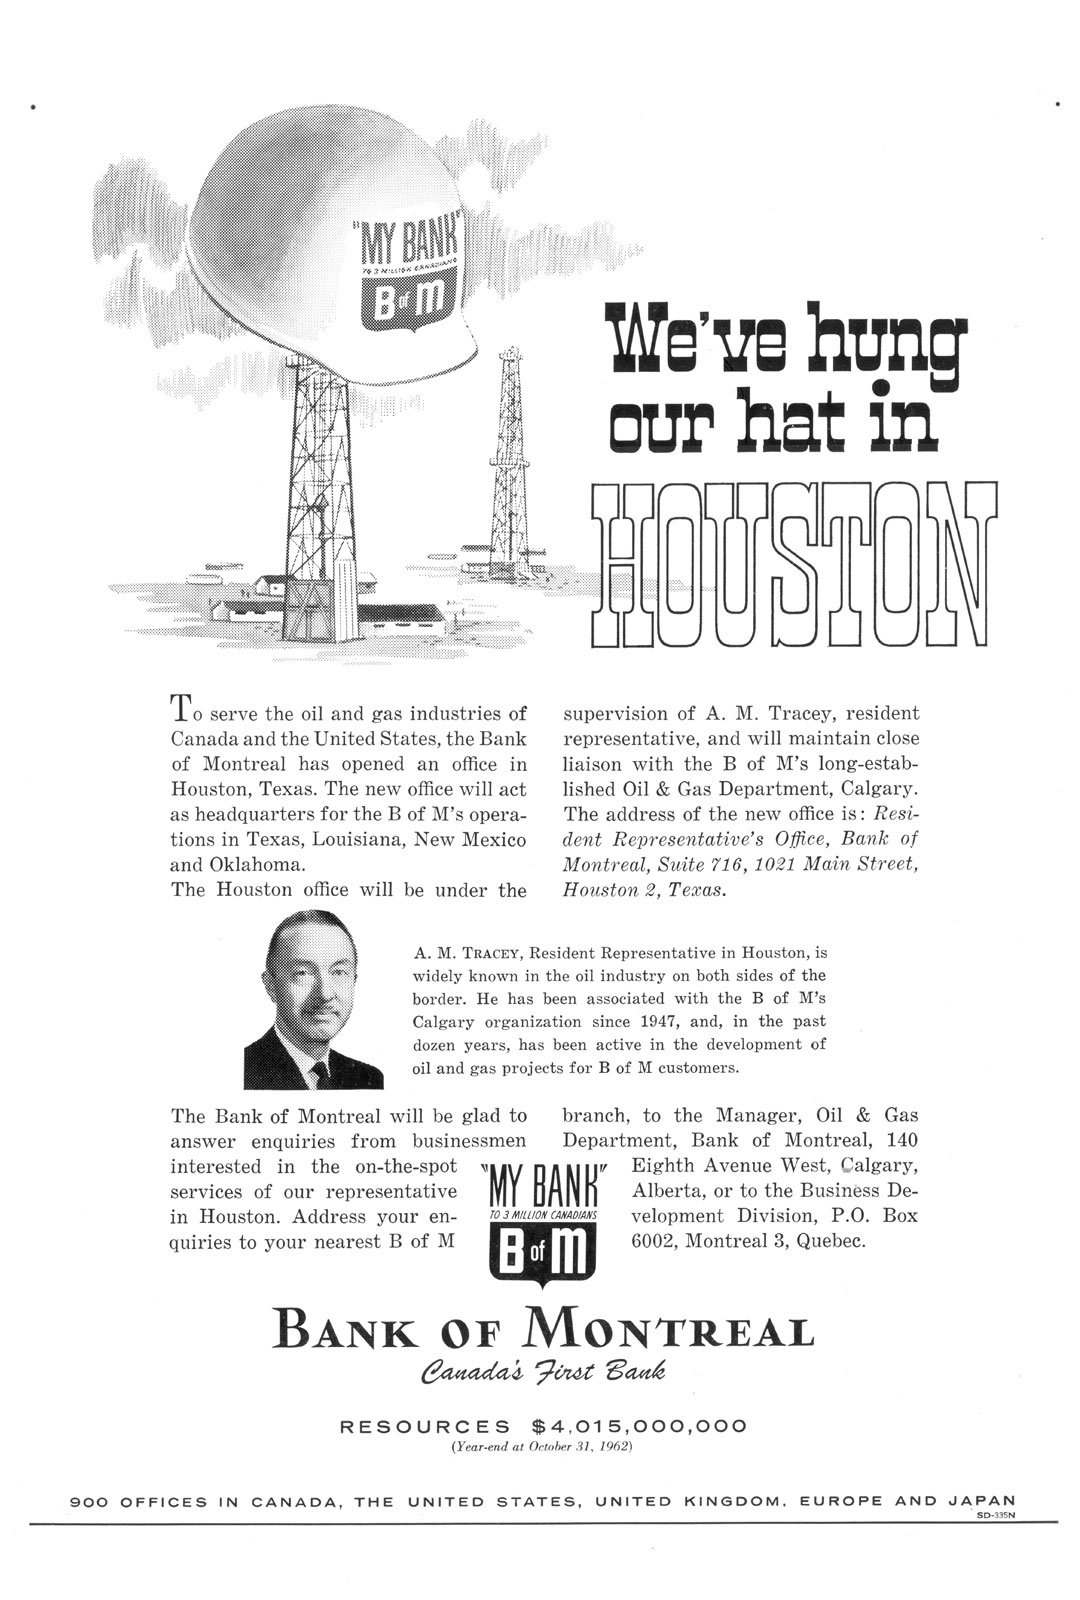 Advertisement announcing the opening of the Bank of Montreal office in Houston, Texas, 1962.